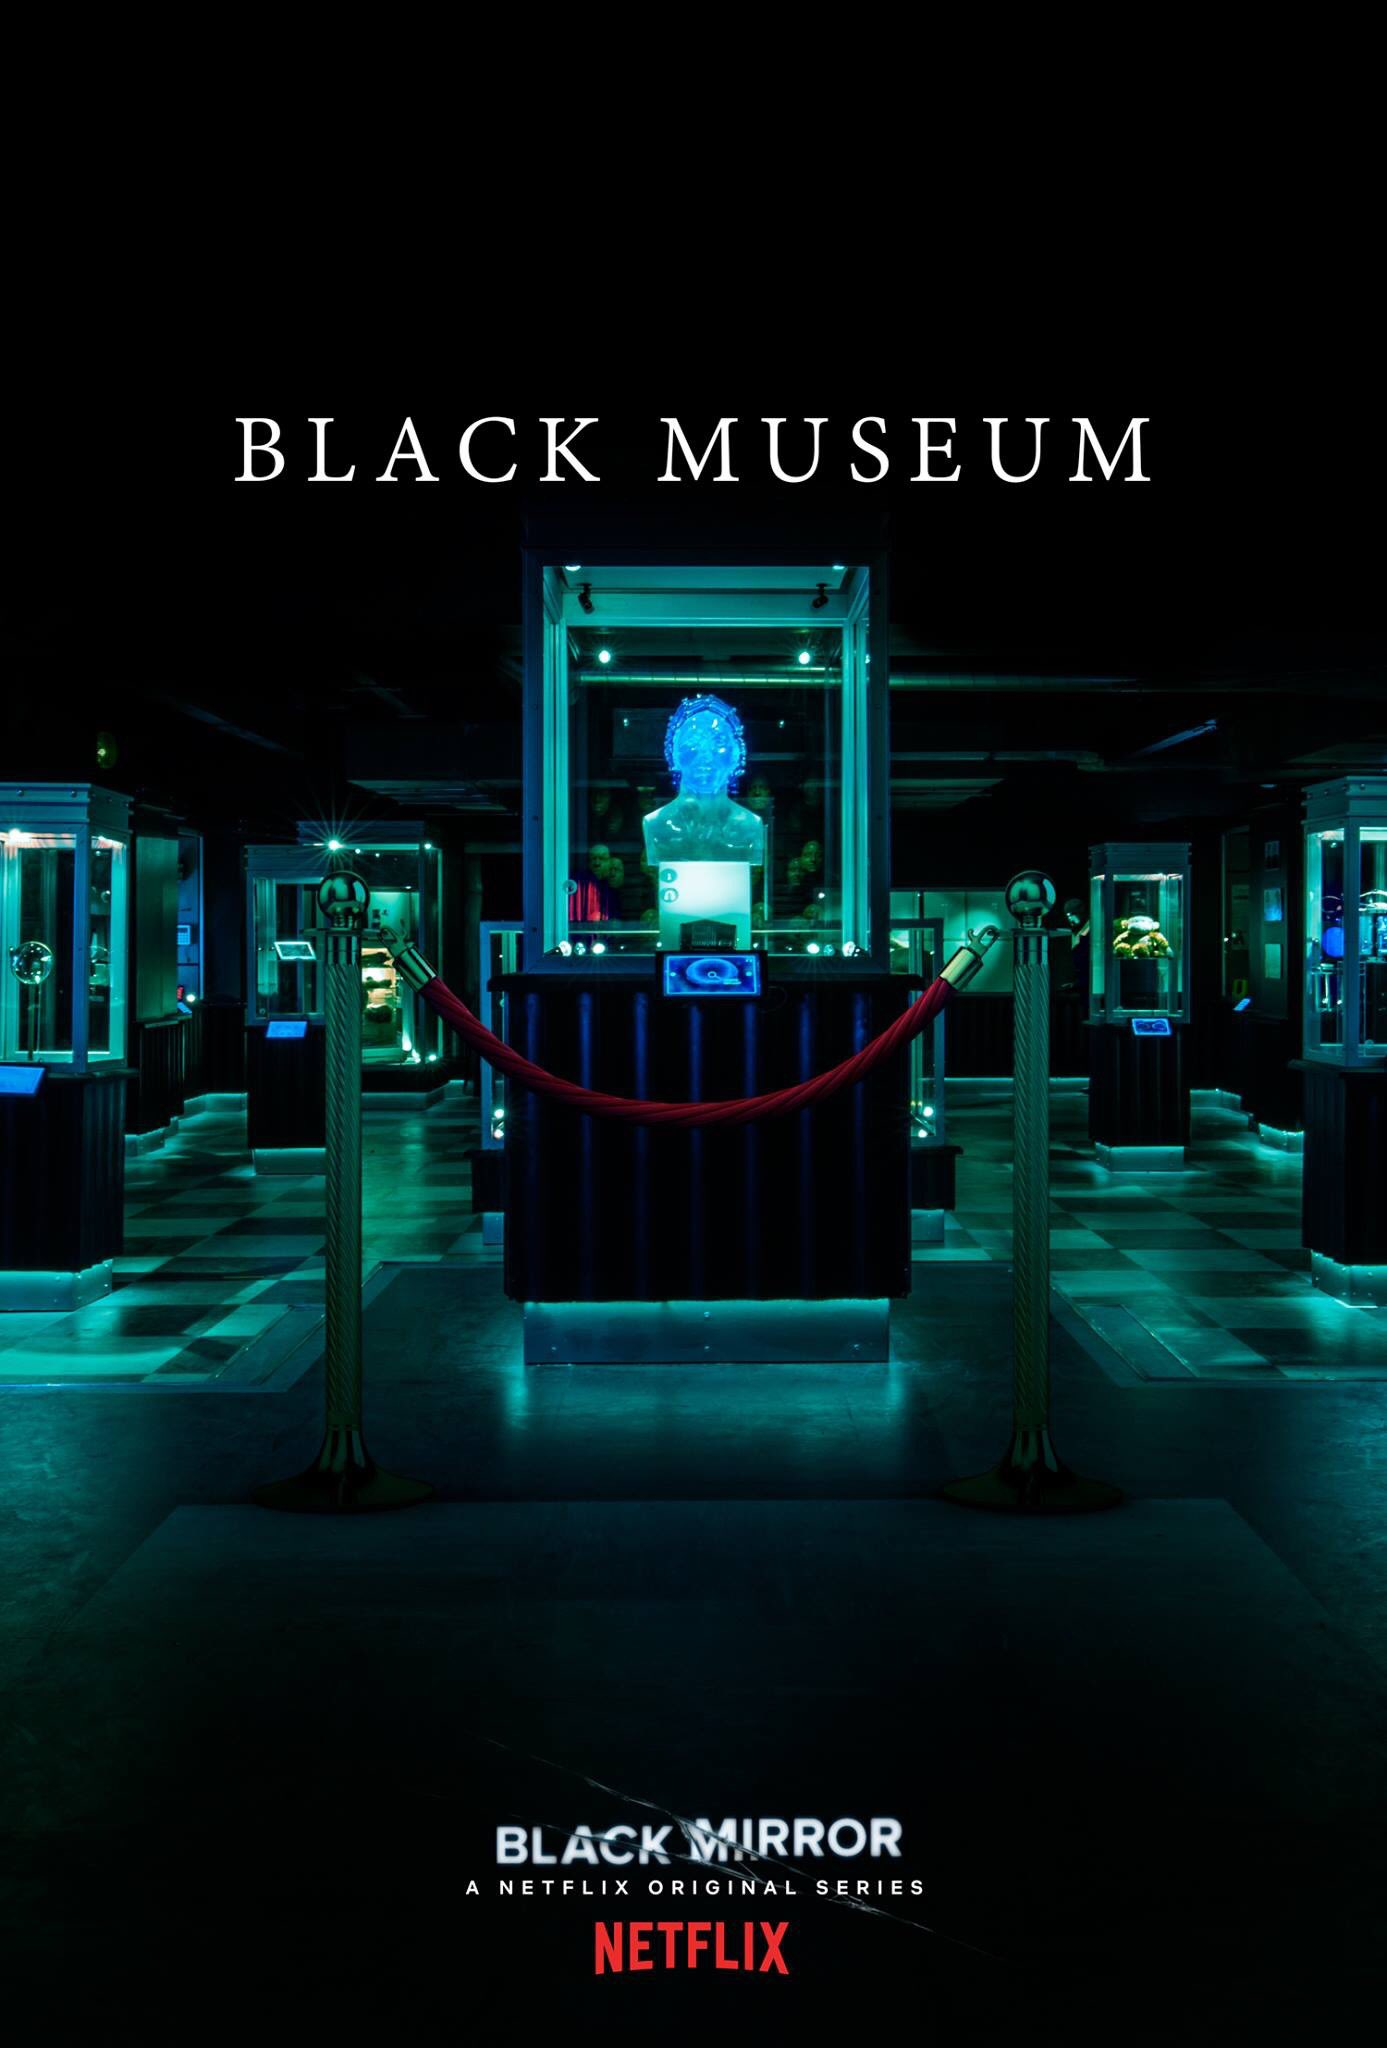 black-mirror-season-4-black-museum-poster